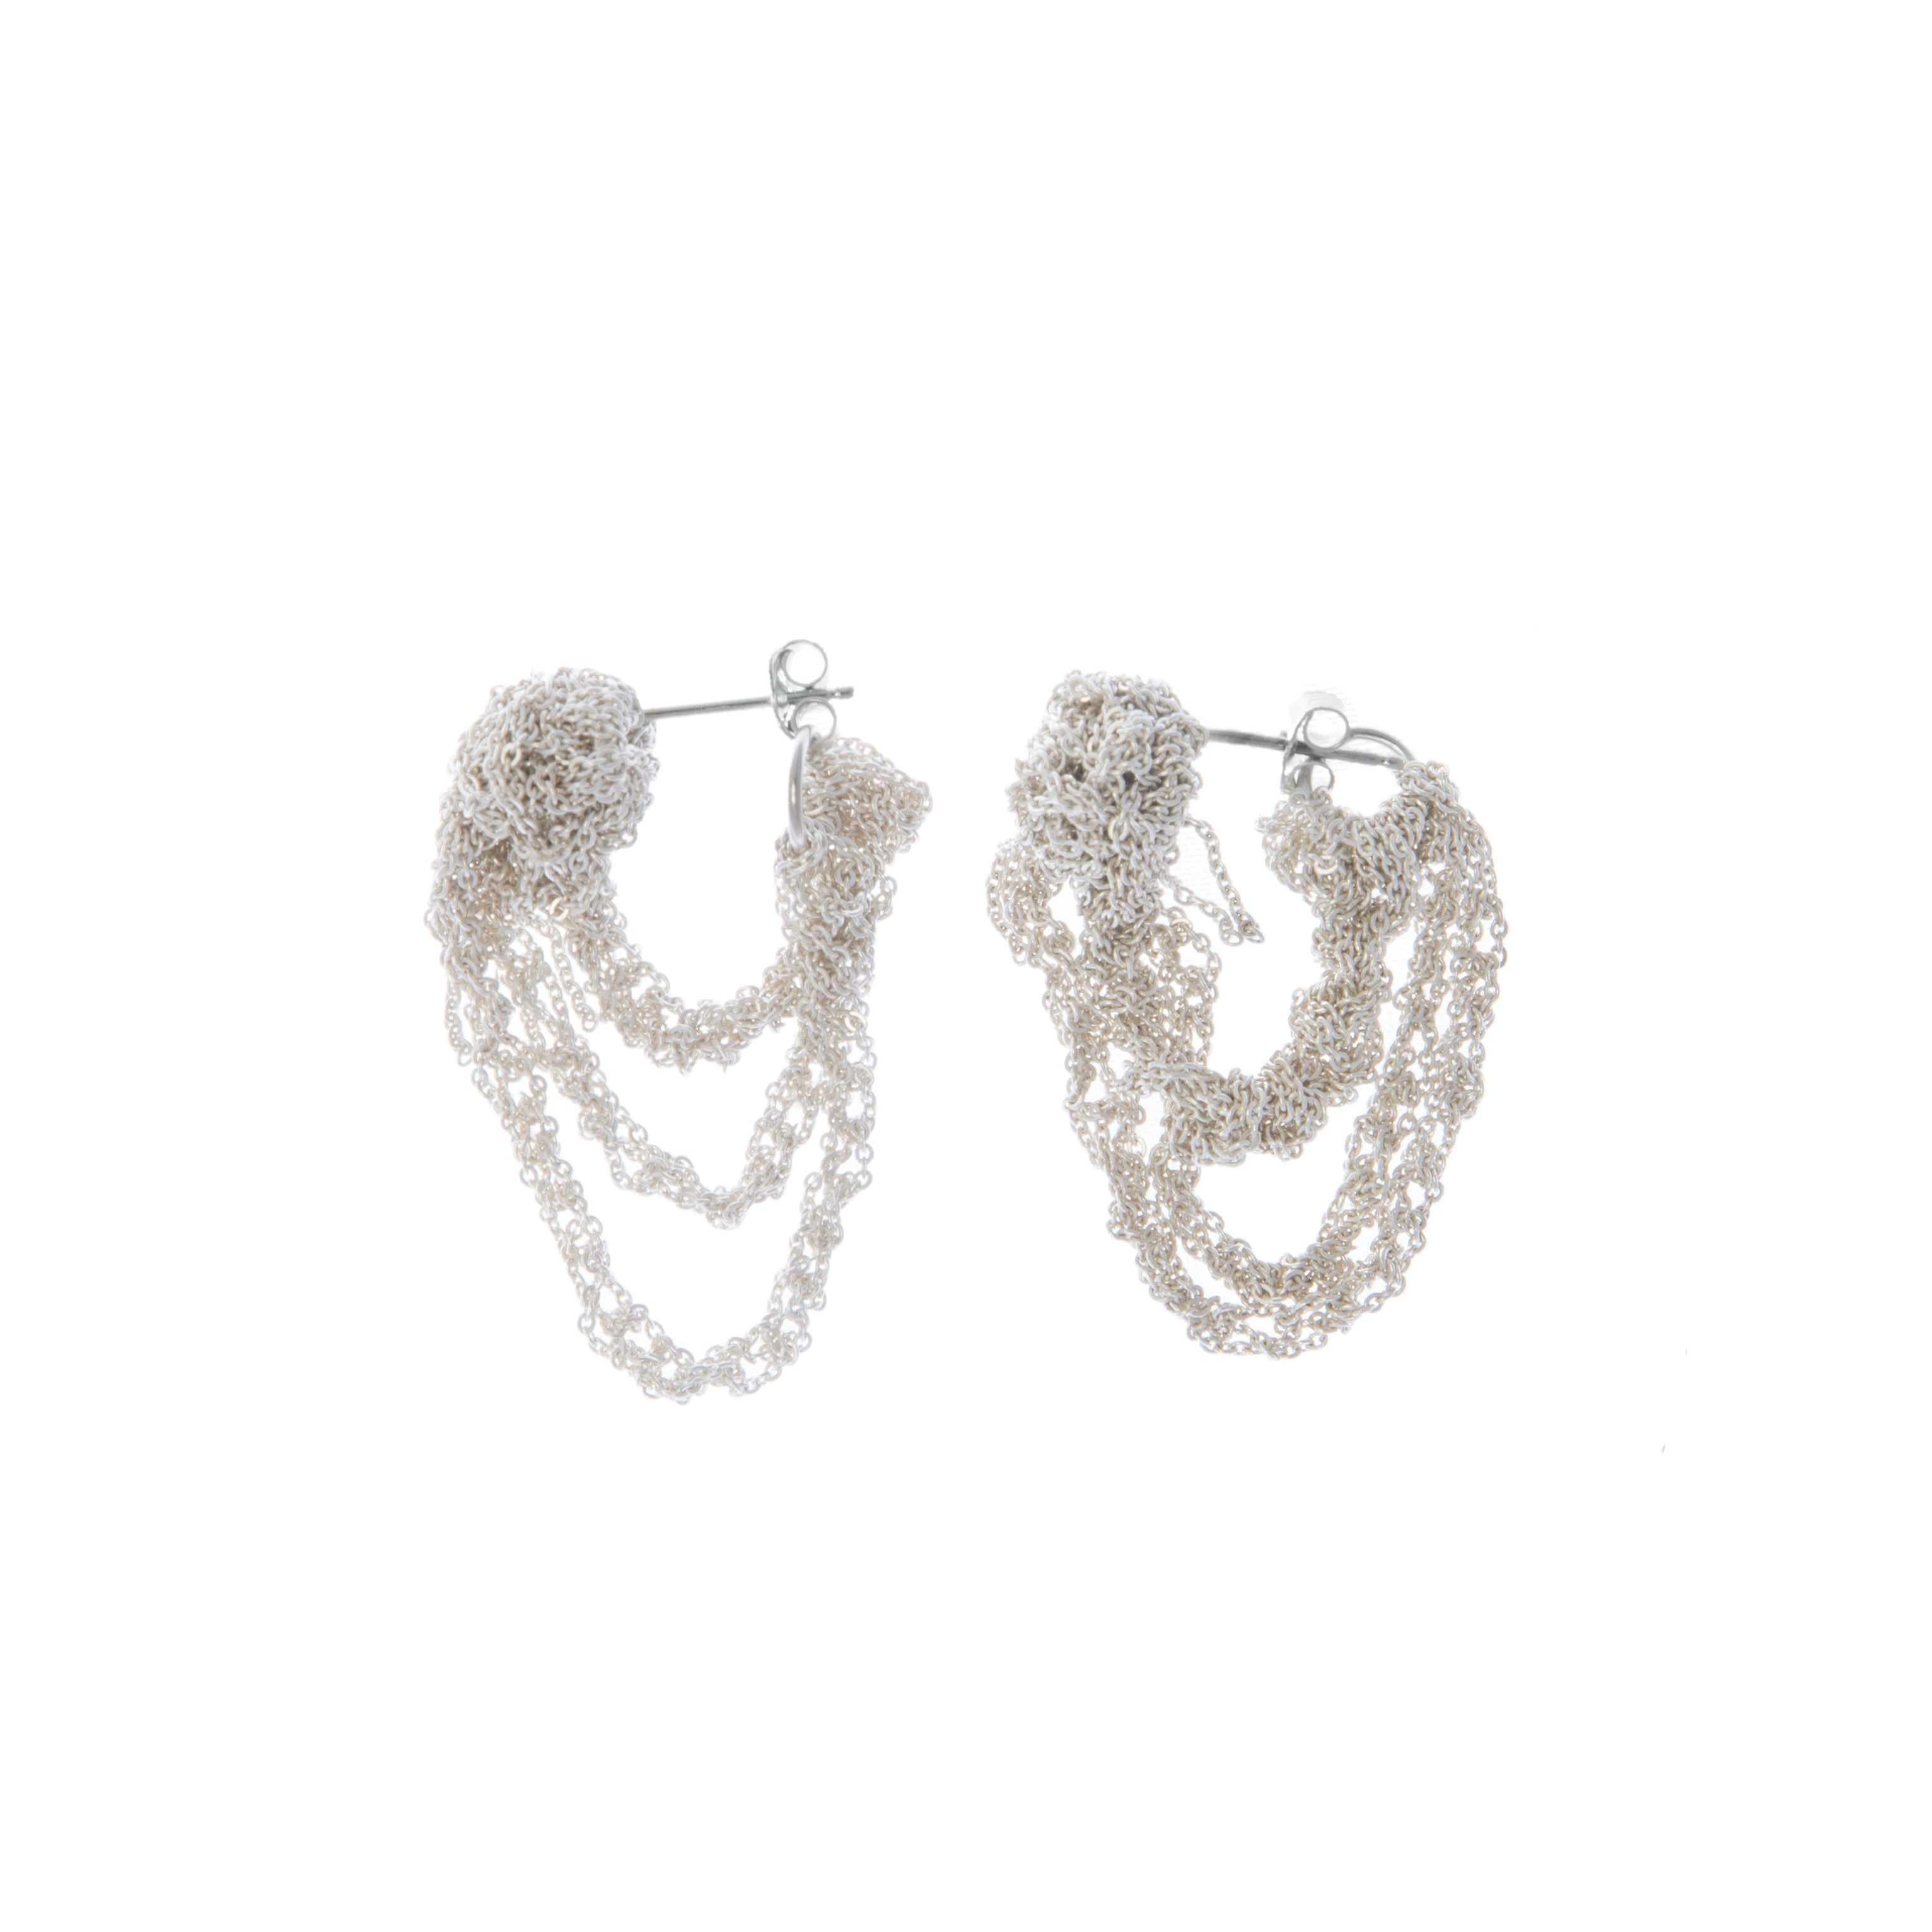 Tiered Cuff Earring in Silver